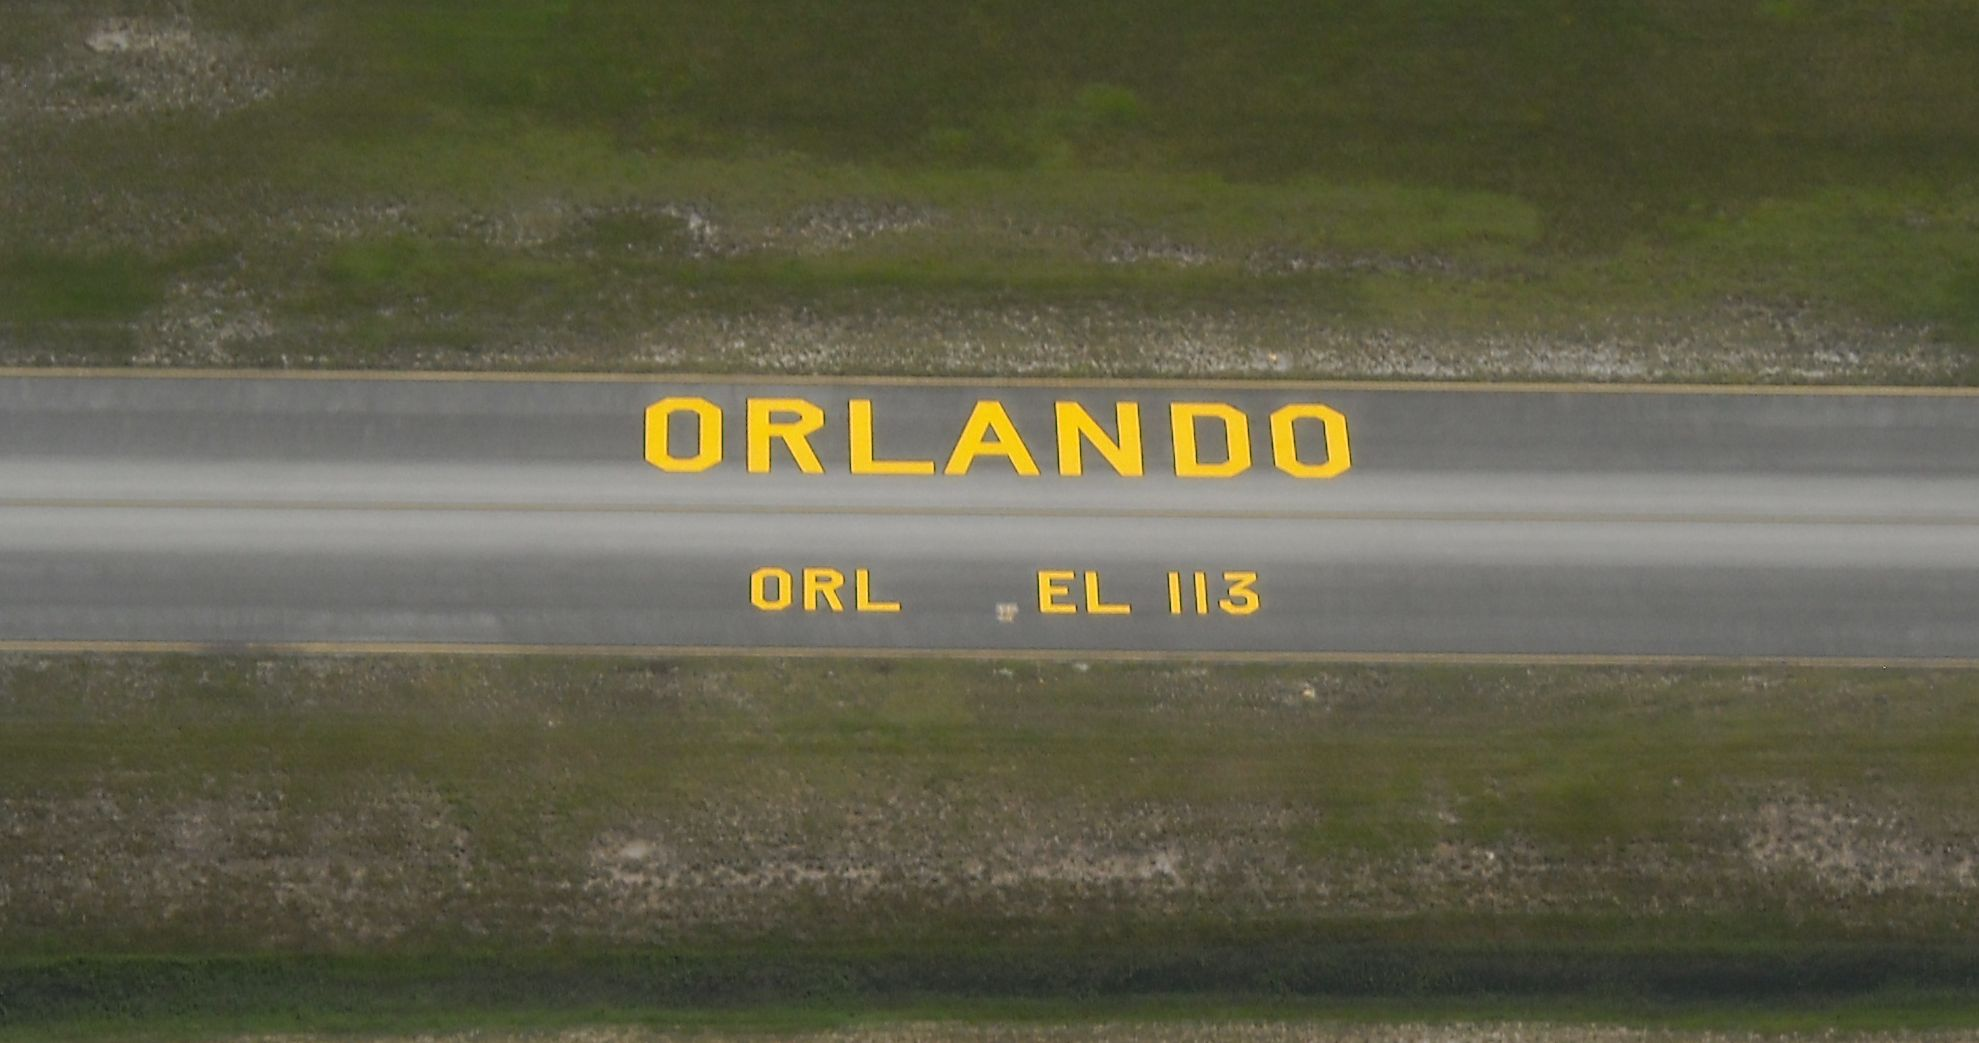 Air Marking of Taxiway A at Orlando Executive. Photo by pilot Bobbi Lasher, an active member of Spaceport Chapter of 99s with 21 years of flying.